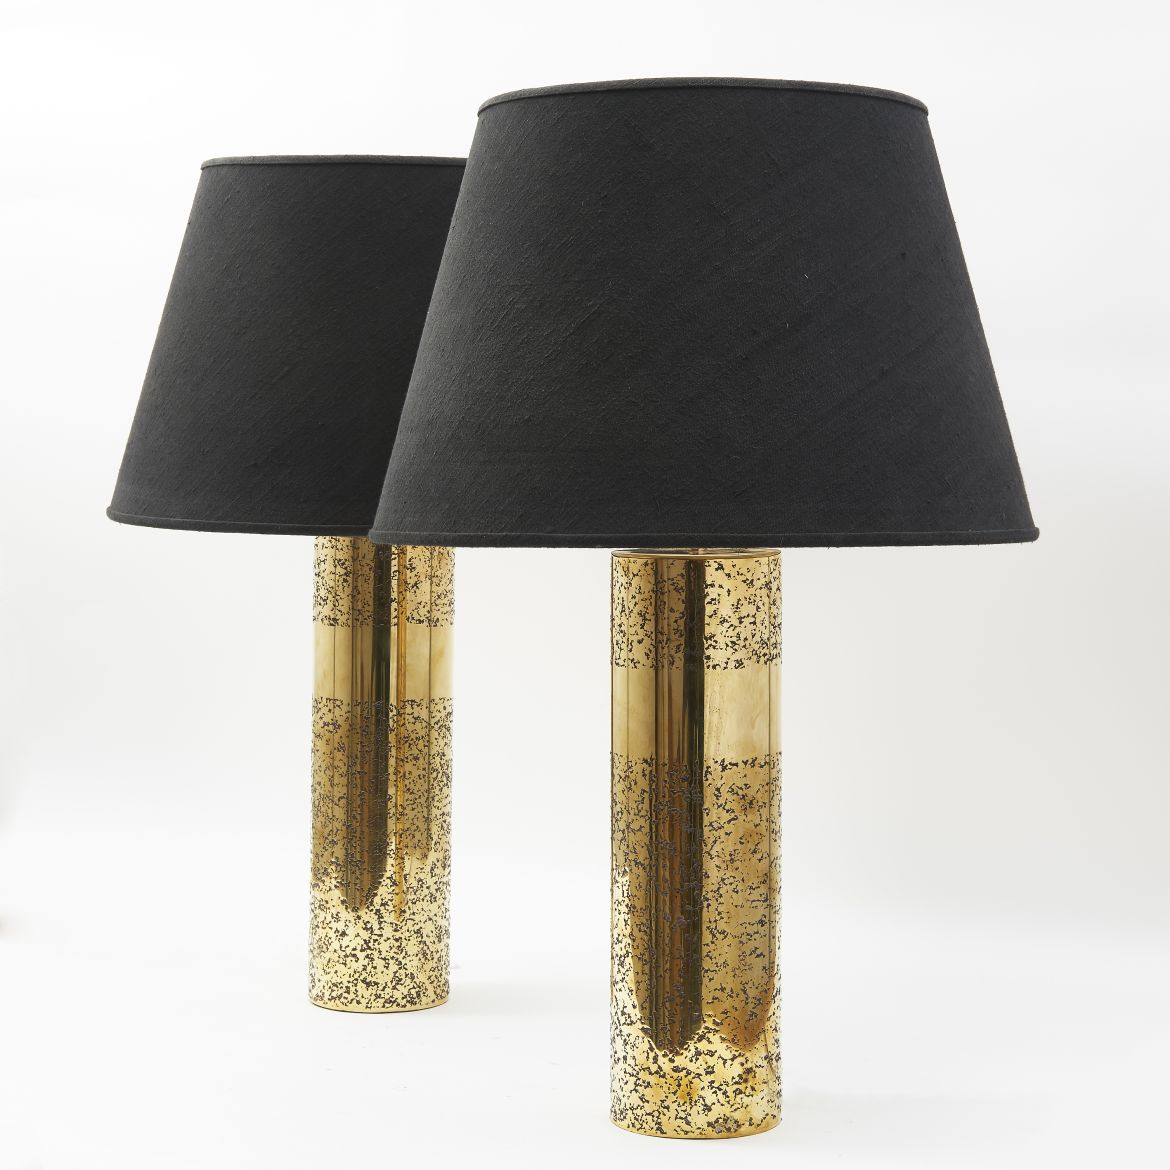 Pair Brass Aban Cylindrical Lamps By Arriau